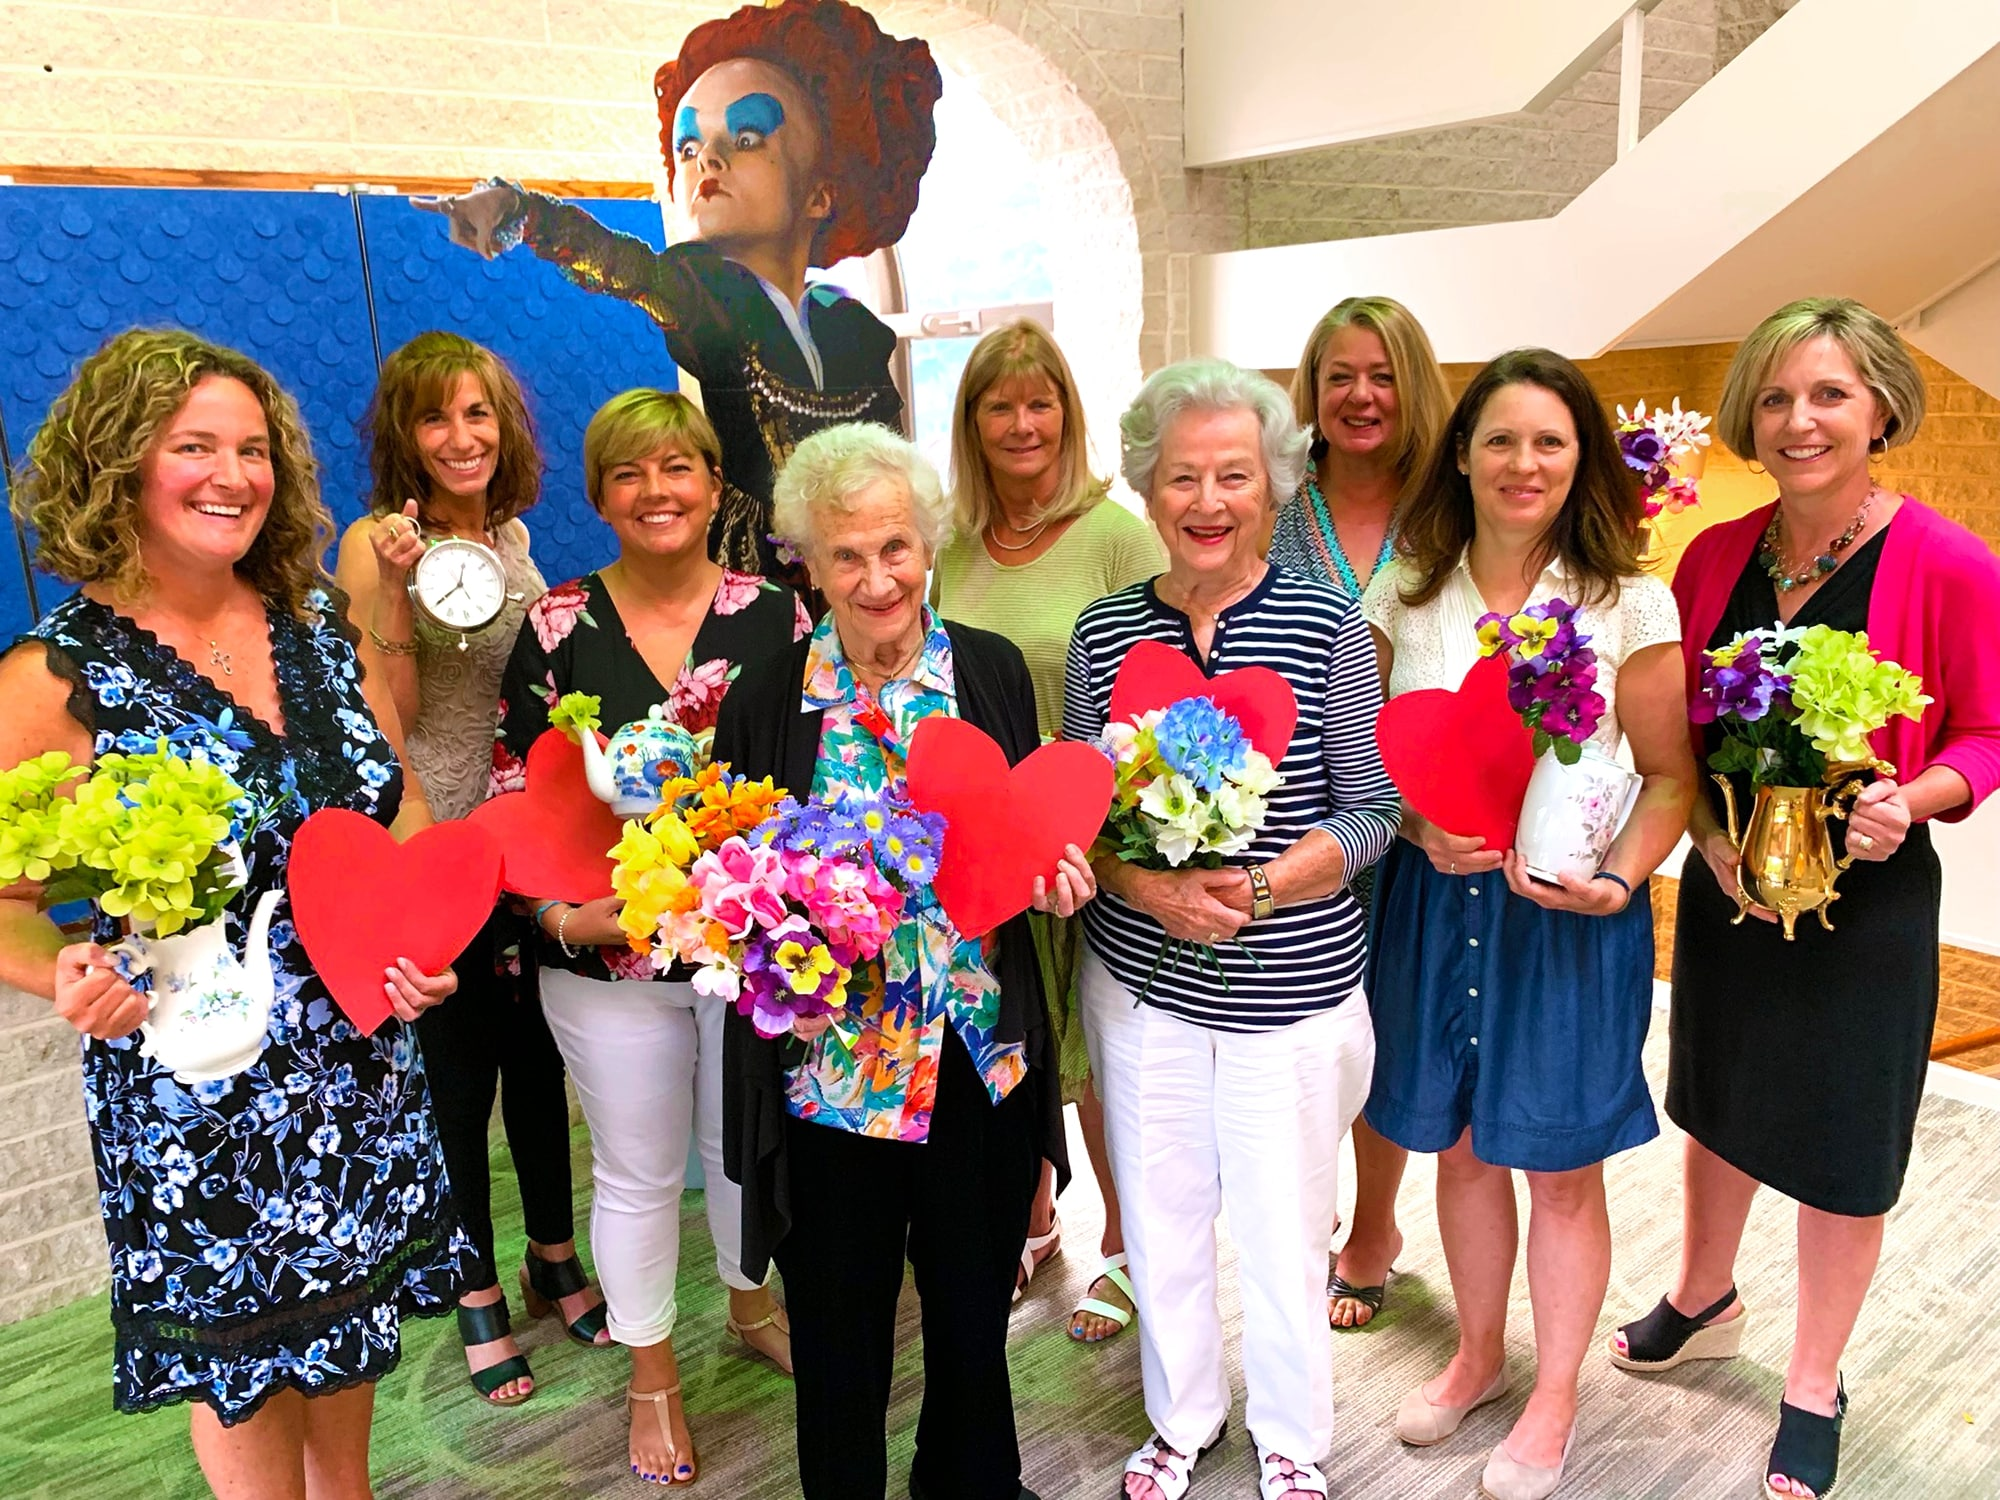 Episcopal Retirement Services' Annual Gala Returns on October 4th